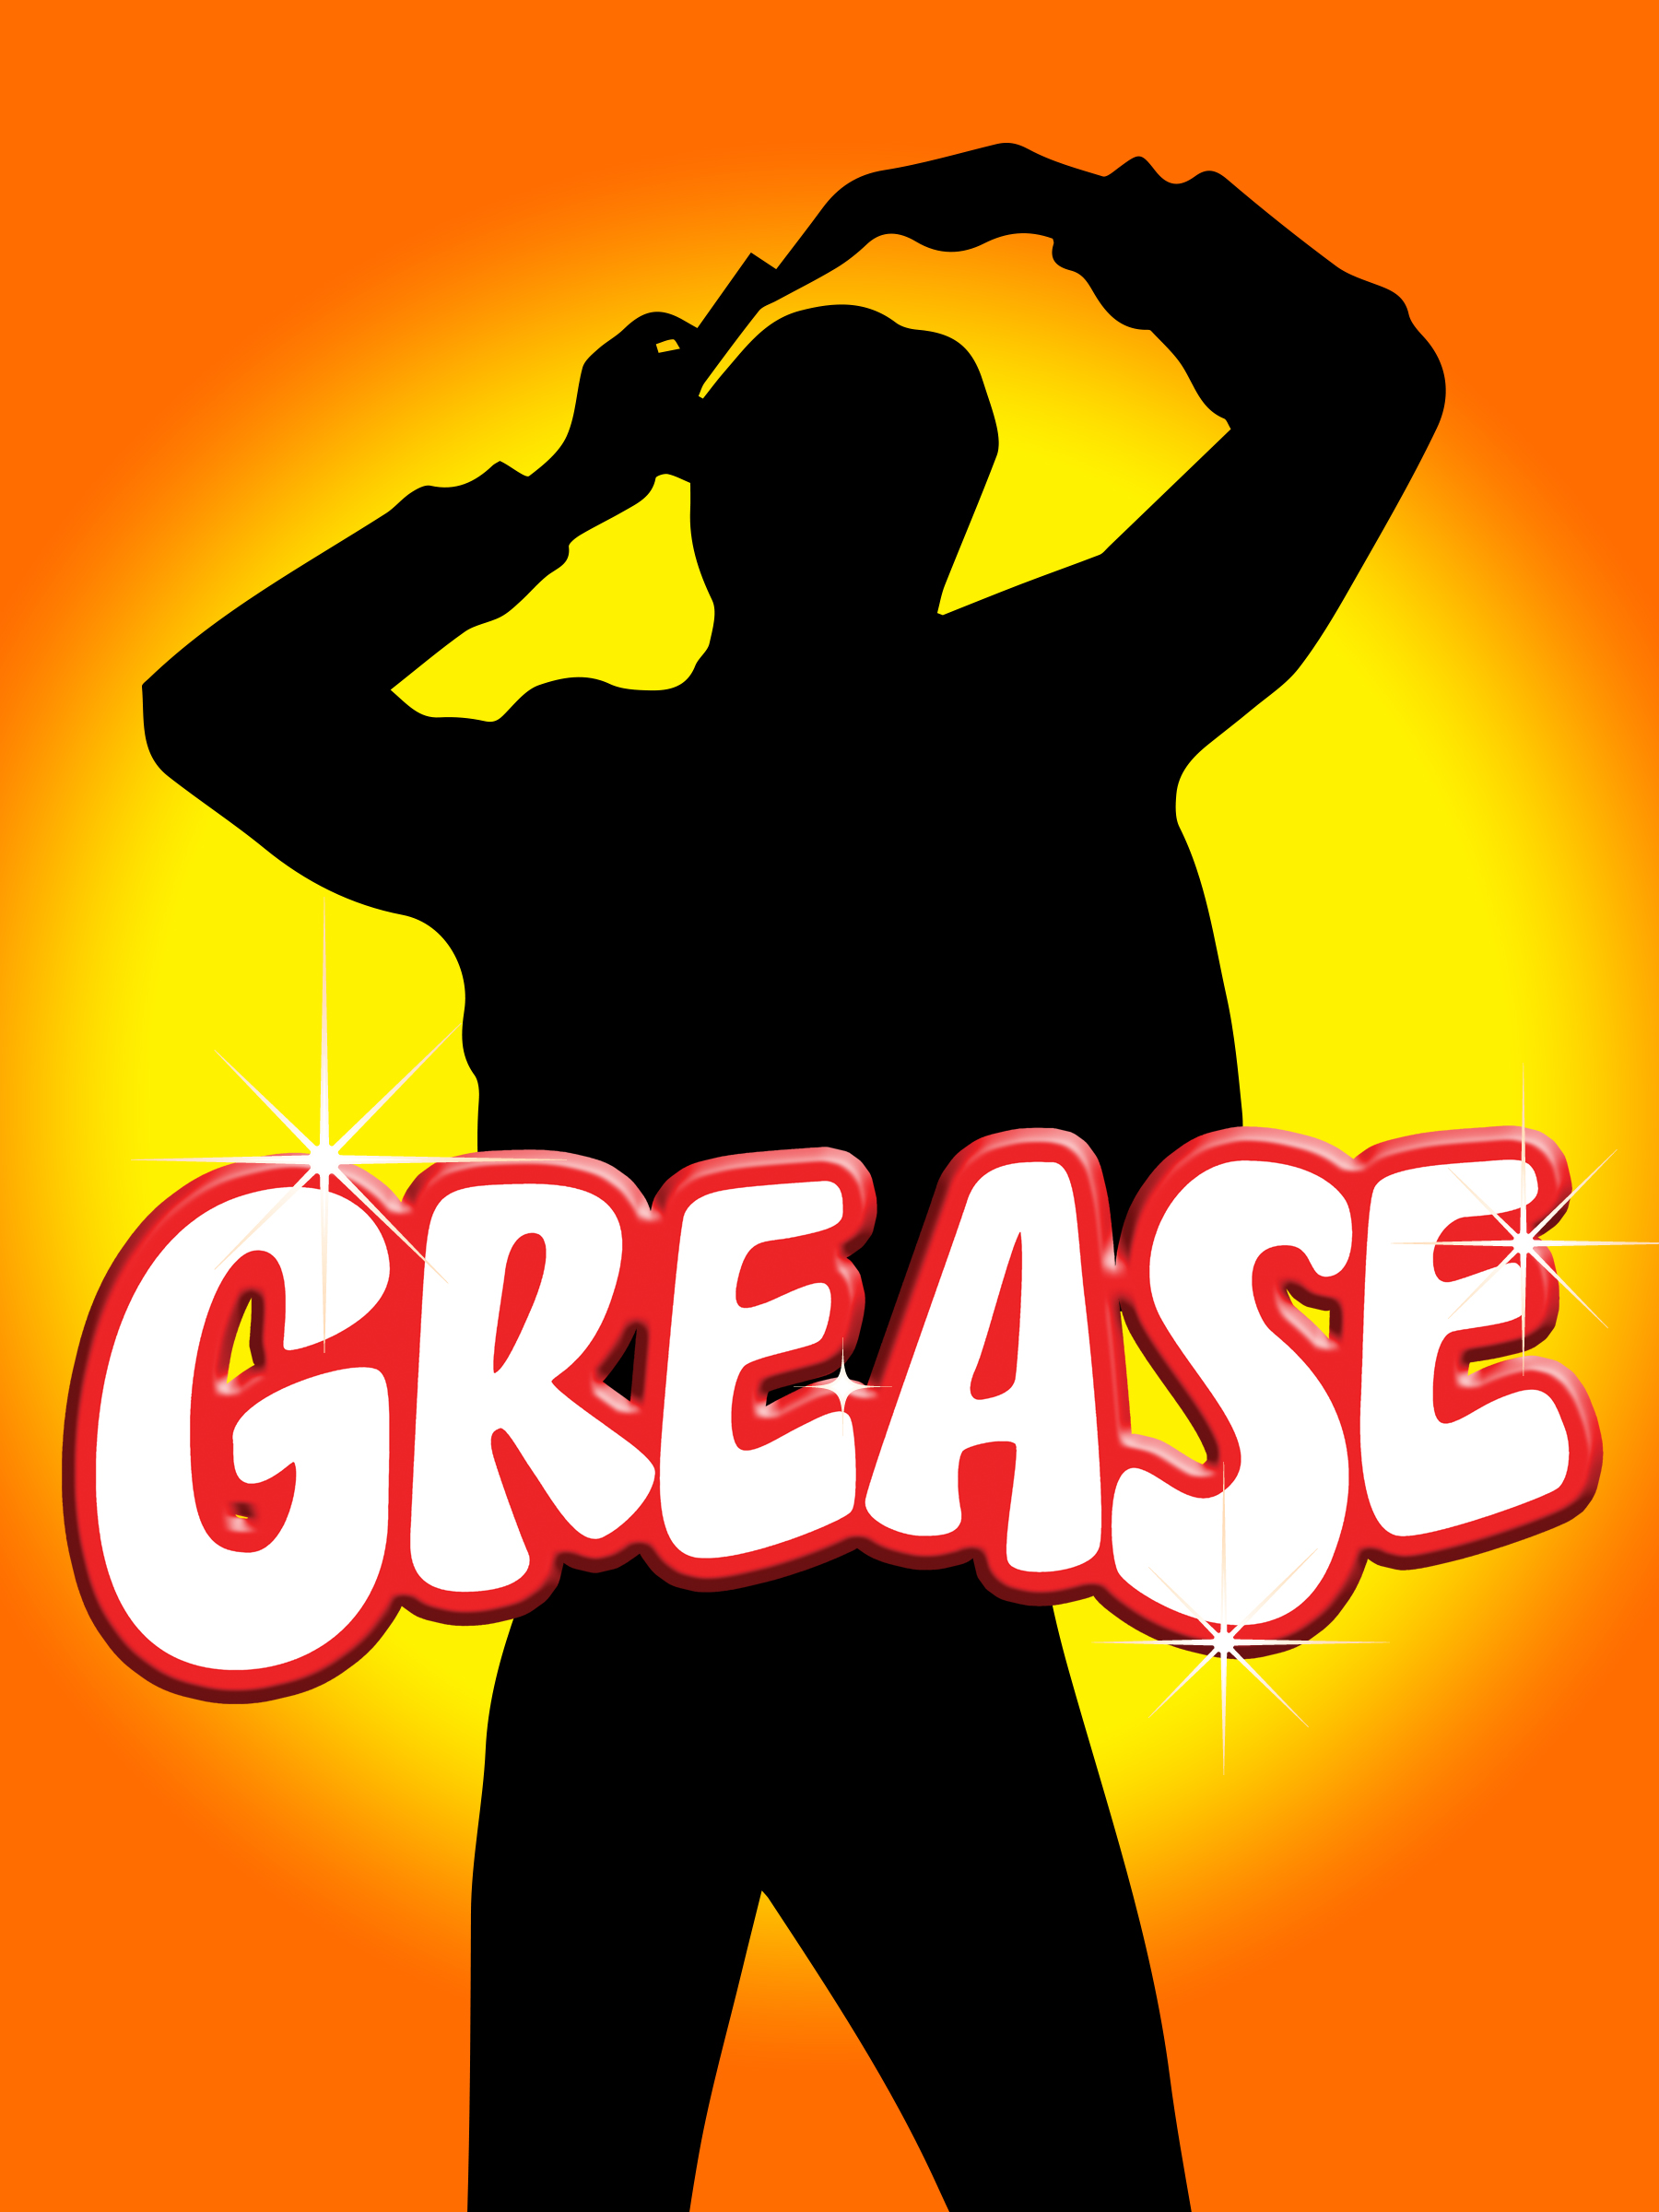 Grease-Poster-HI-1.jpg